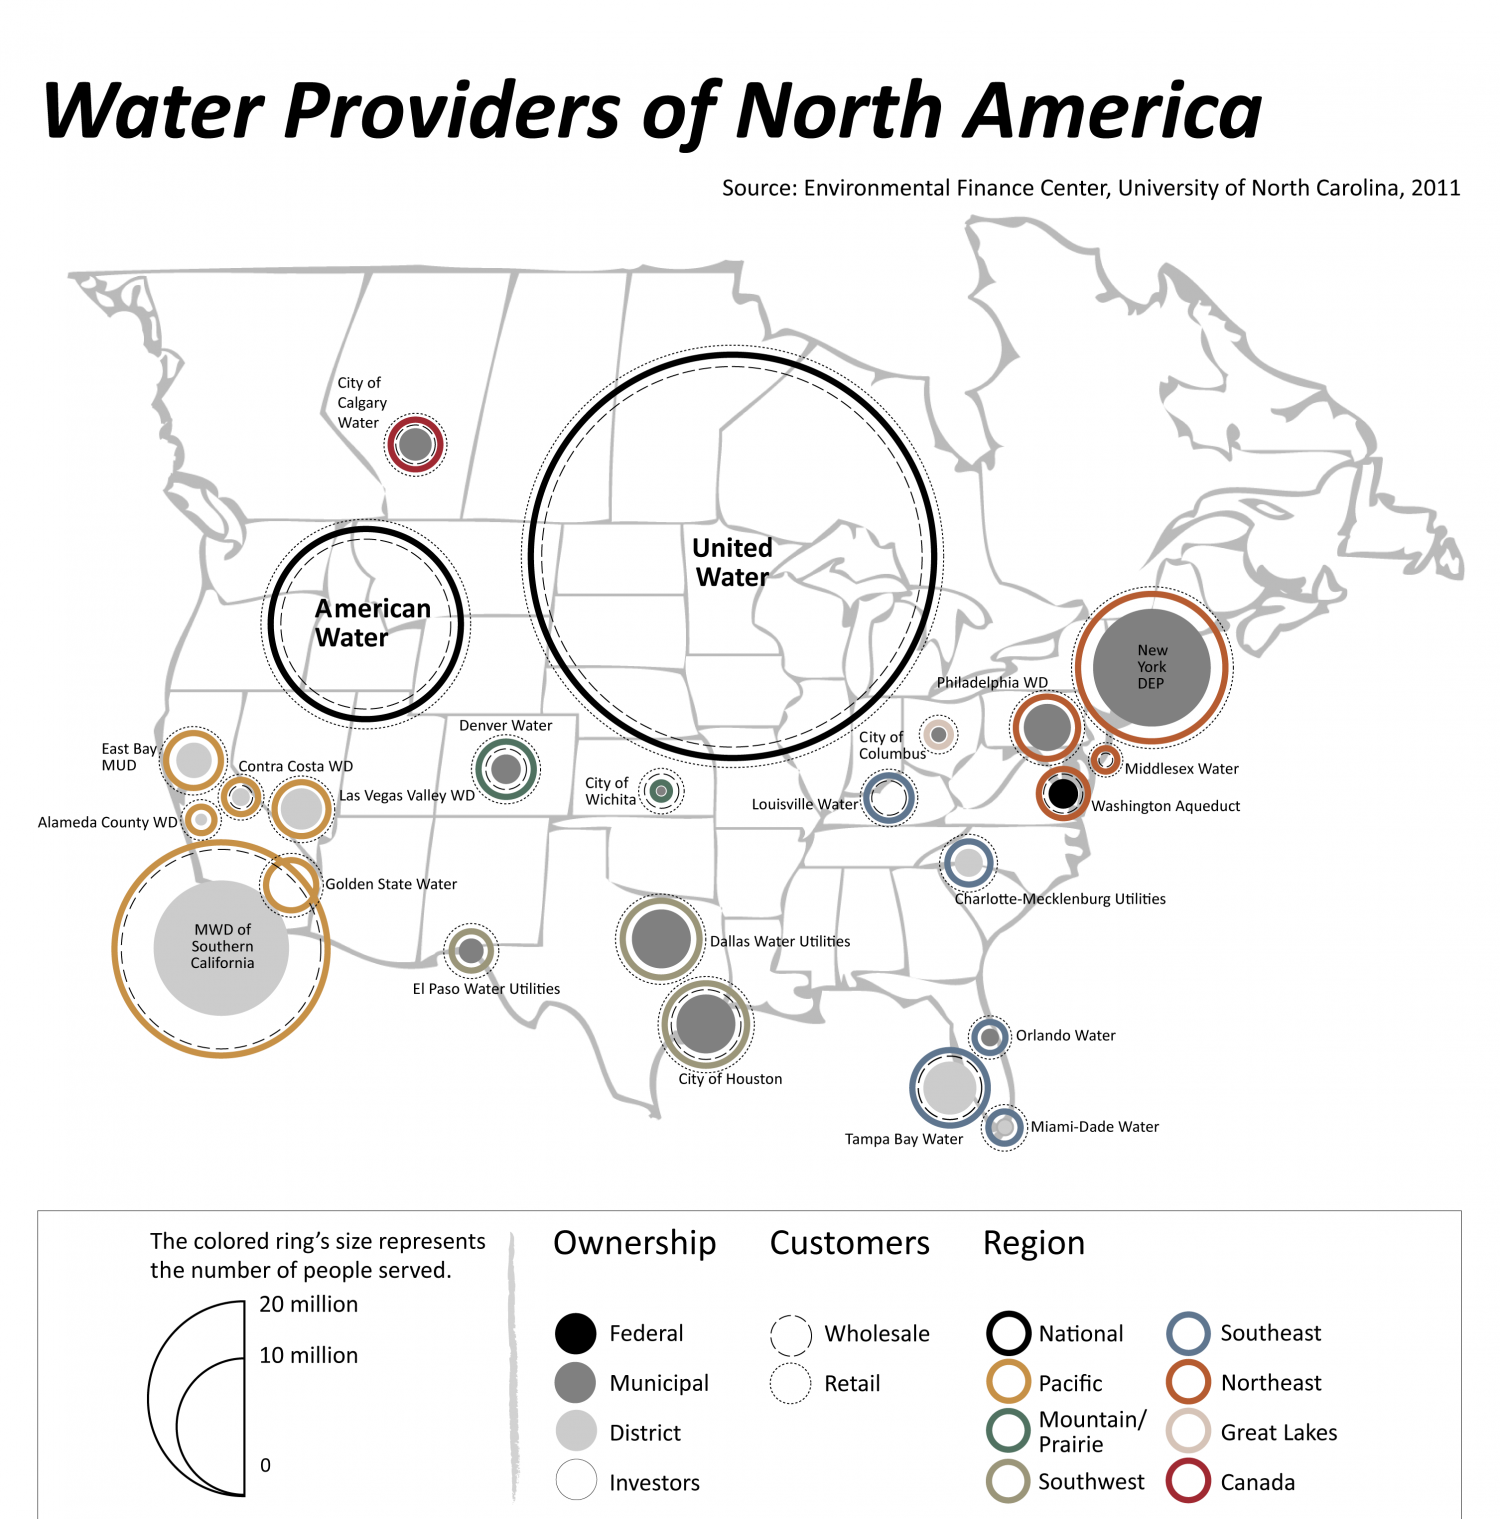 Water Providers of North America v 2.0 Infographic